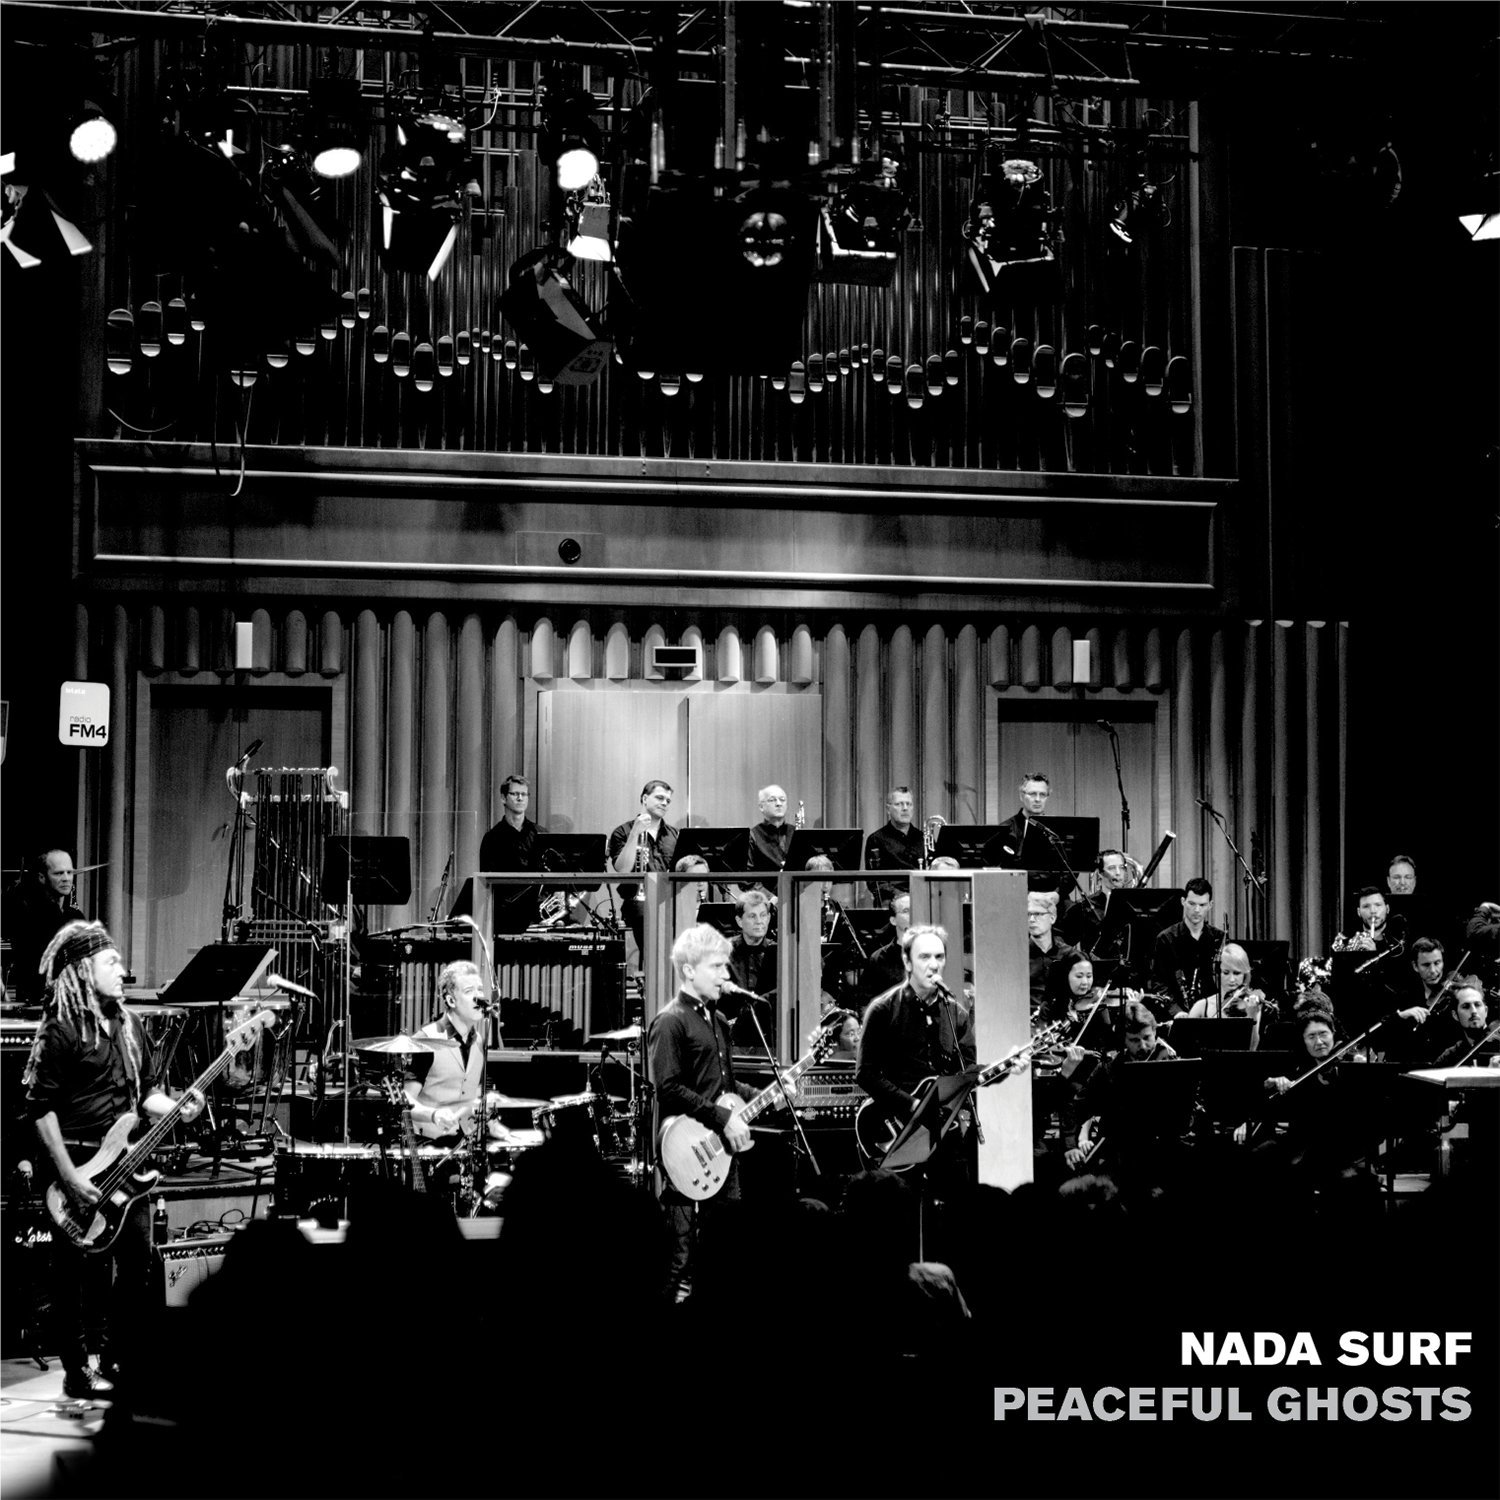 Nada Surf - Peaceful Ghosts